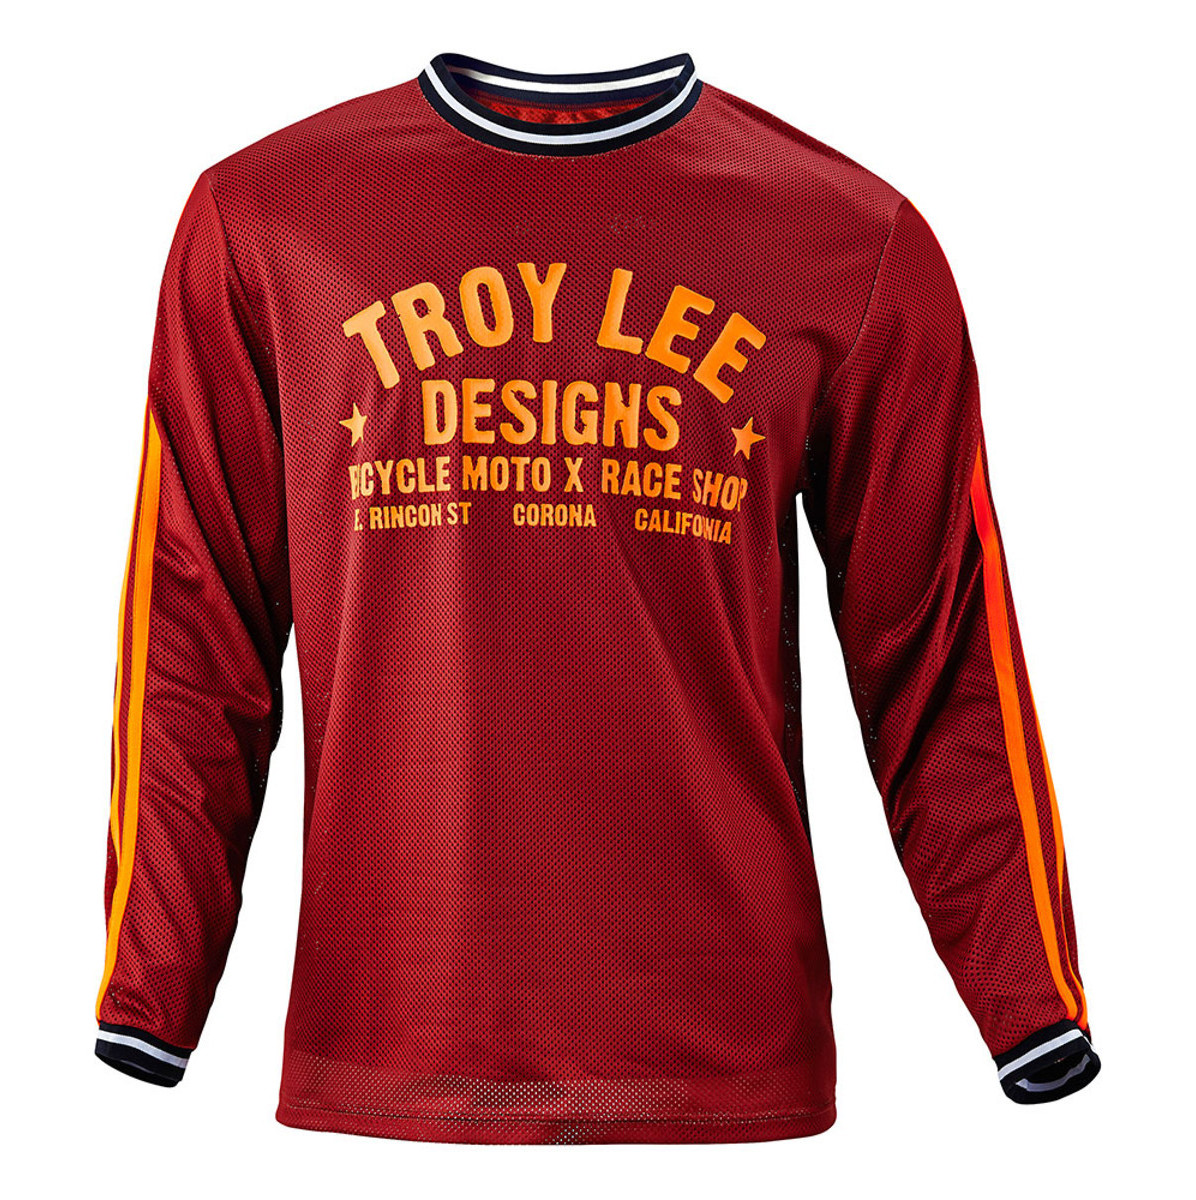 Troy Lee Designs Super Retro Jersey  TLD Super Retro Jersey - Maroon